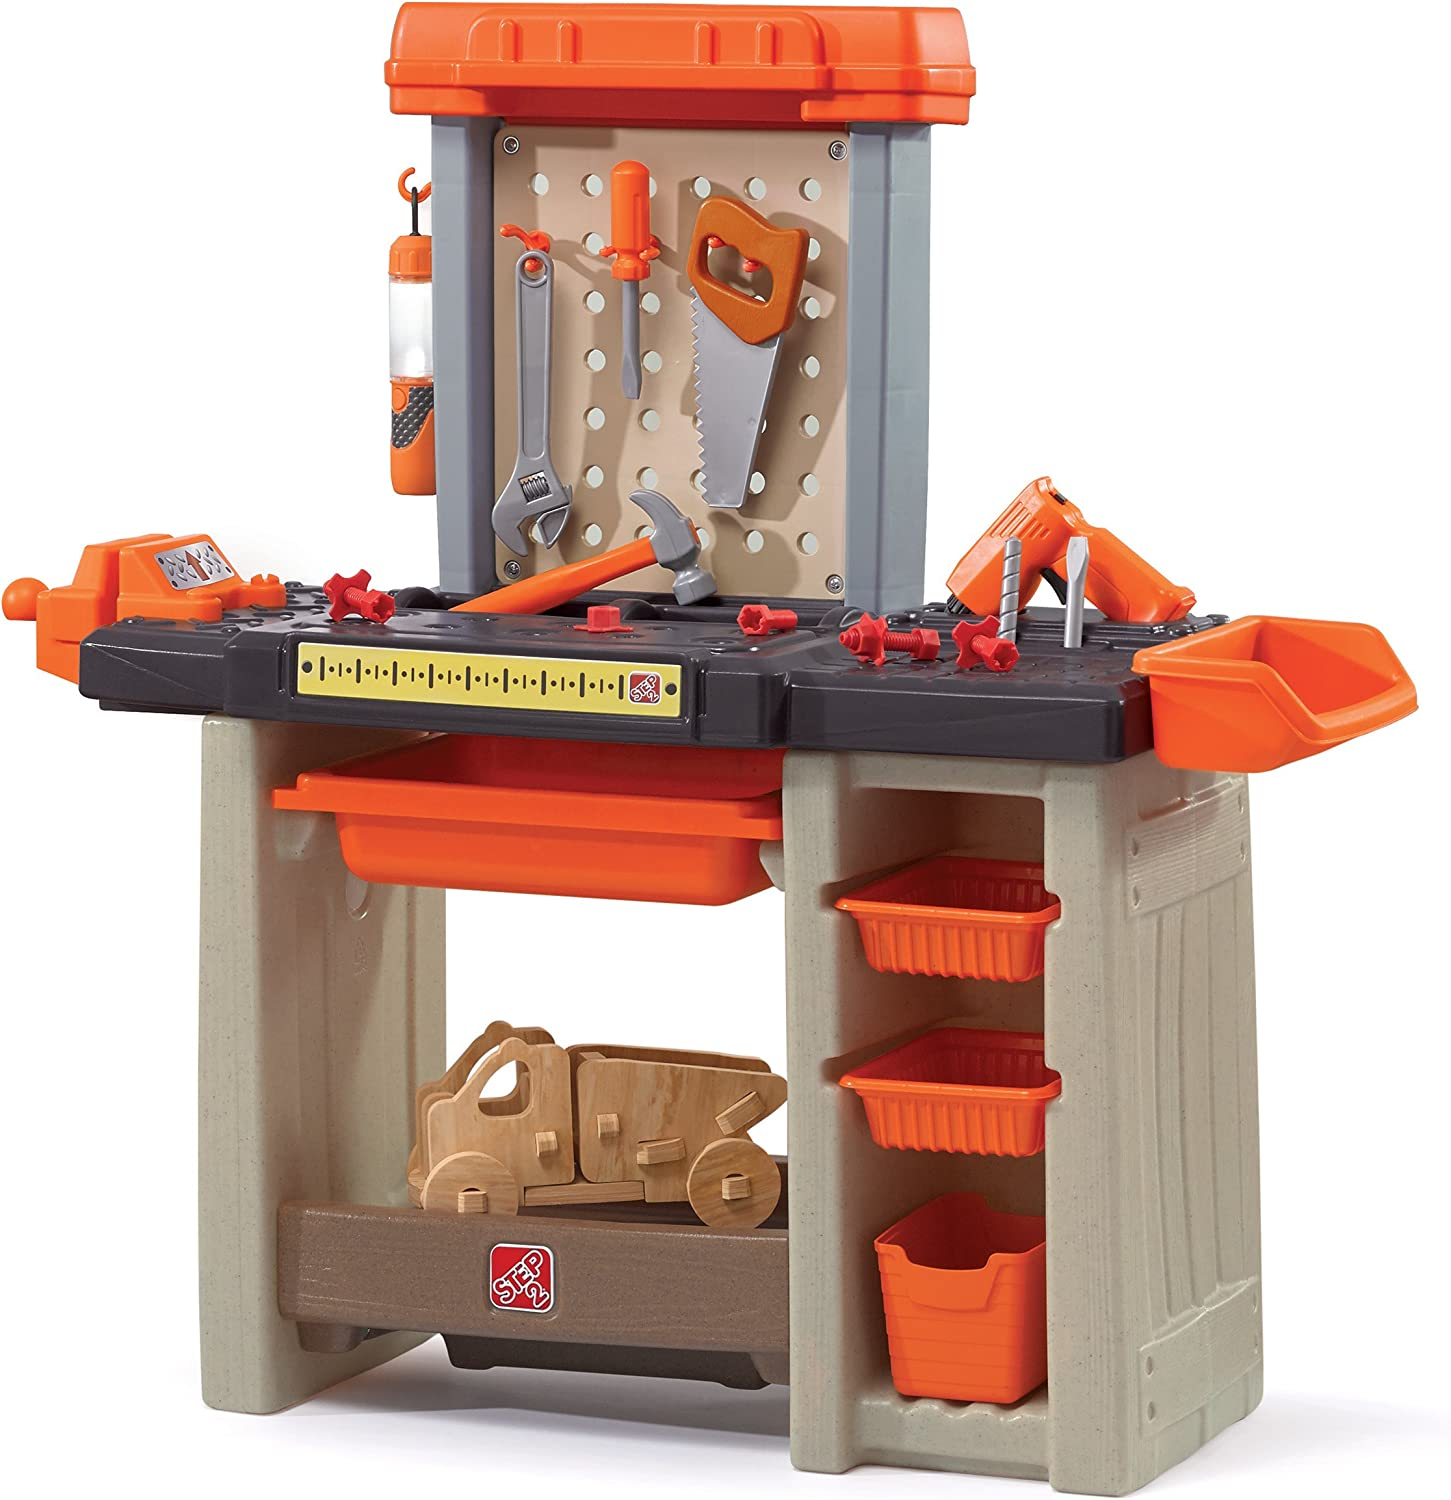 Top 14 Best Kids Tool Bench (2020 Reviews & Buying Guide) 13